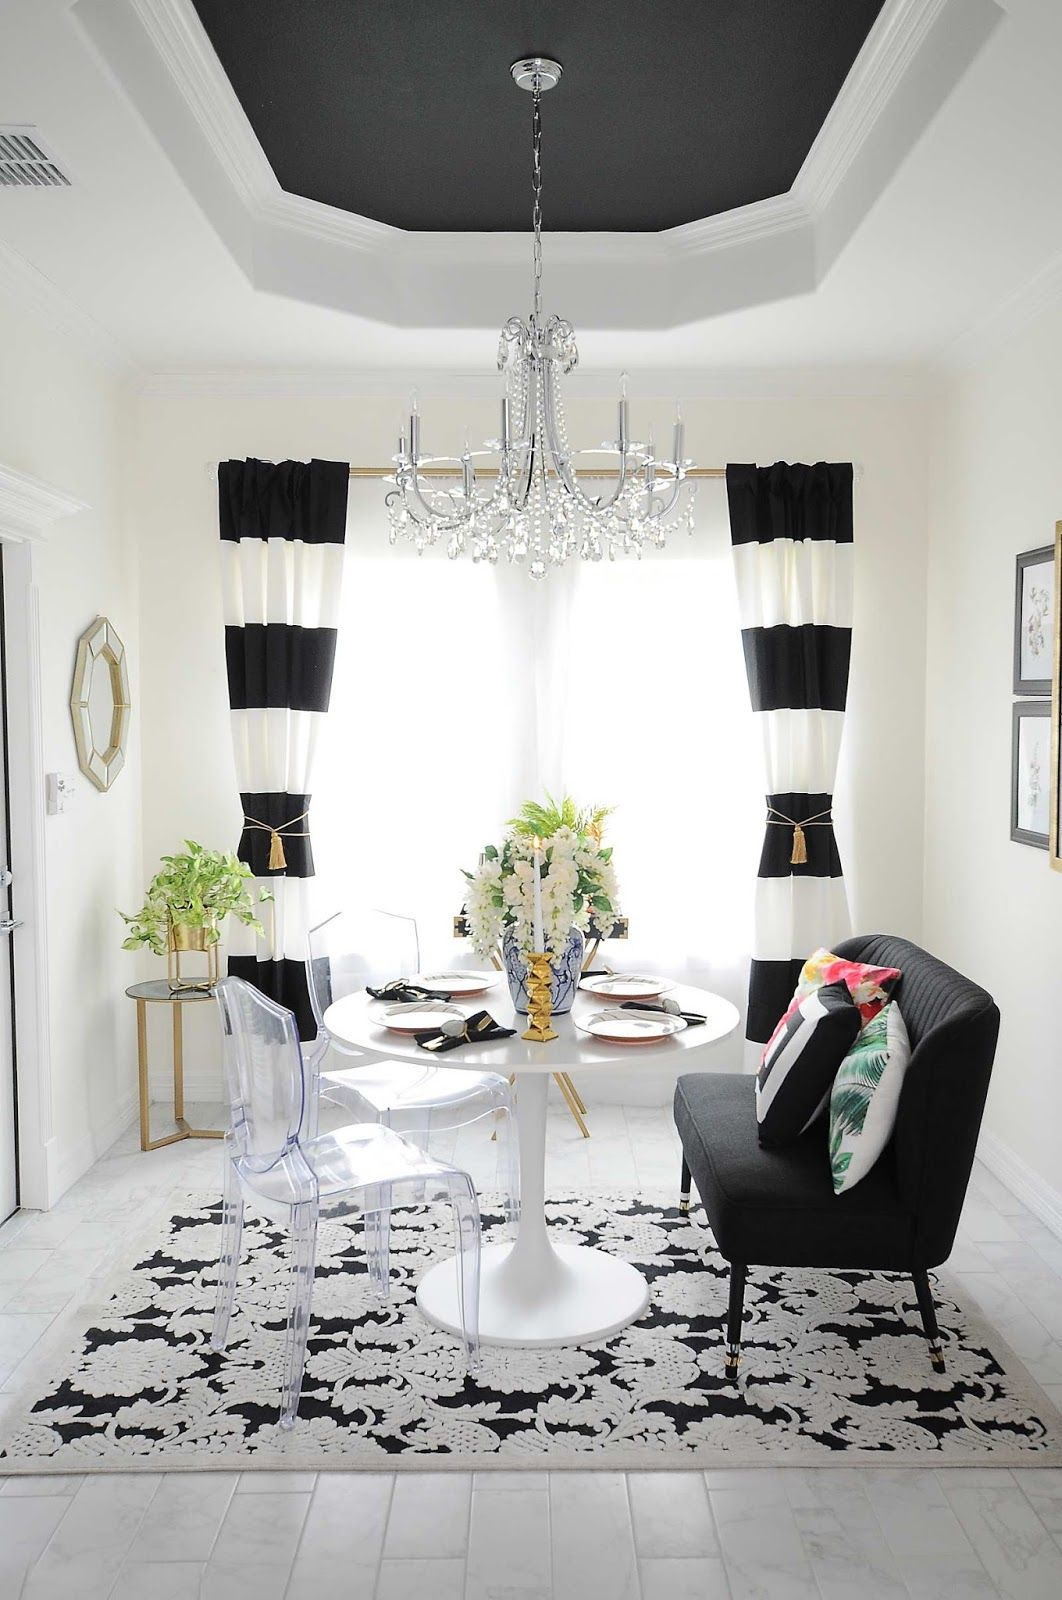 Black And White Striped Curtains Frame A Small Dining Room Space With Audubon Floral And Botan Black Dining Room White Dining Room Black And White Dining Room #white #drapes #in #living #room